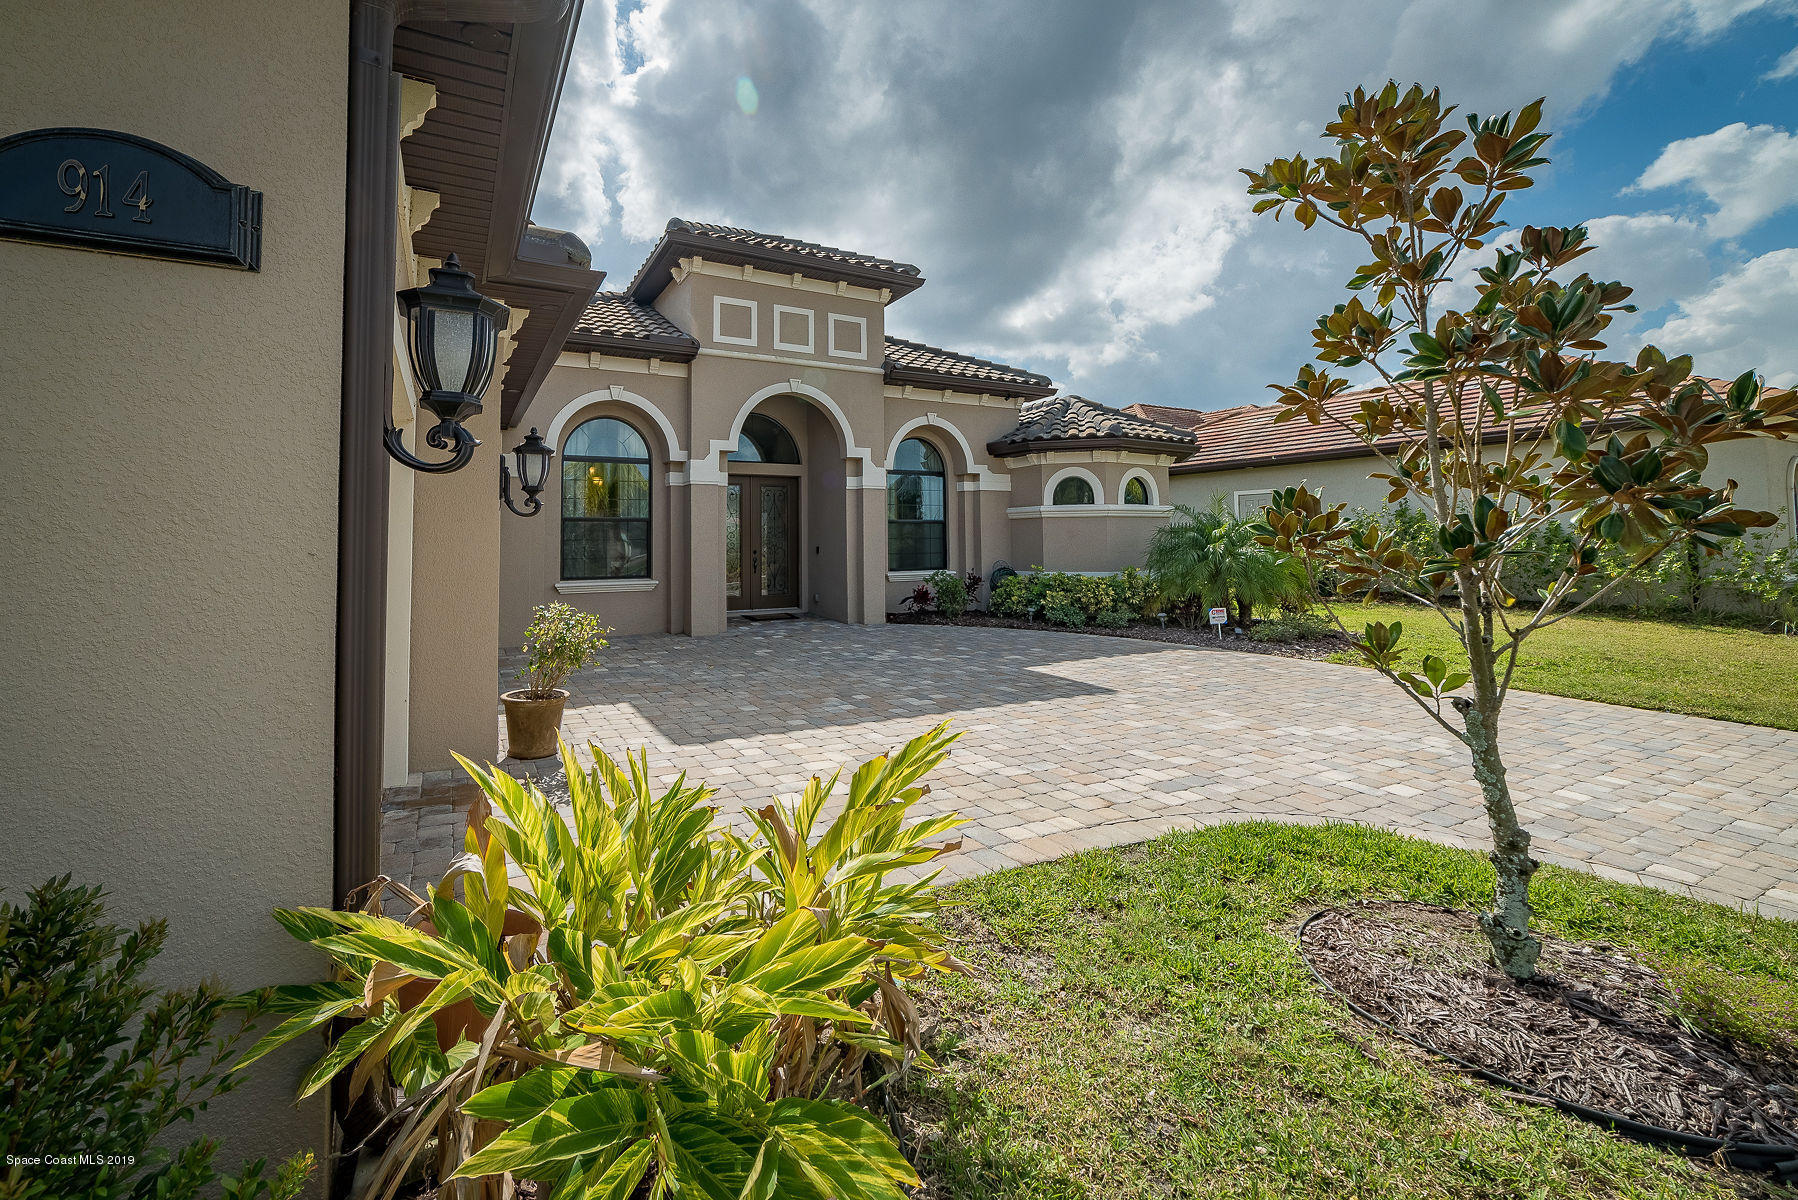 Single Family Homes for Sale at 914 Casa Dolce Casa Rockledge, Florida 32955 United States